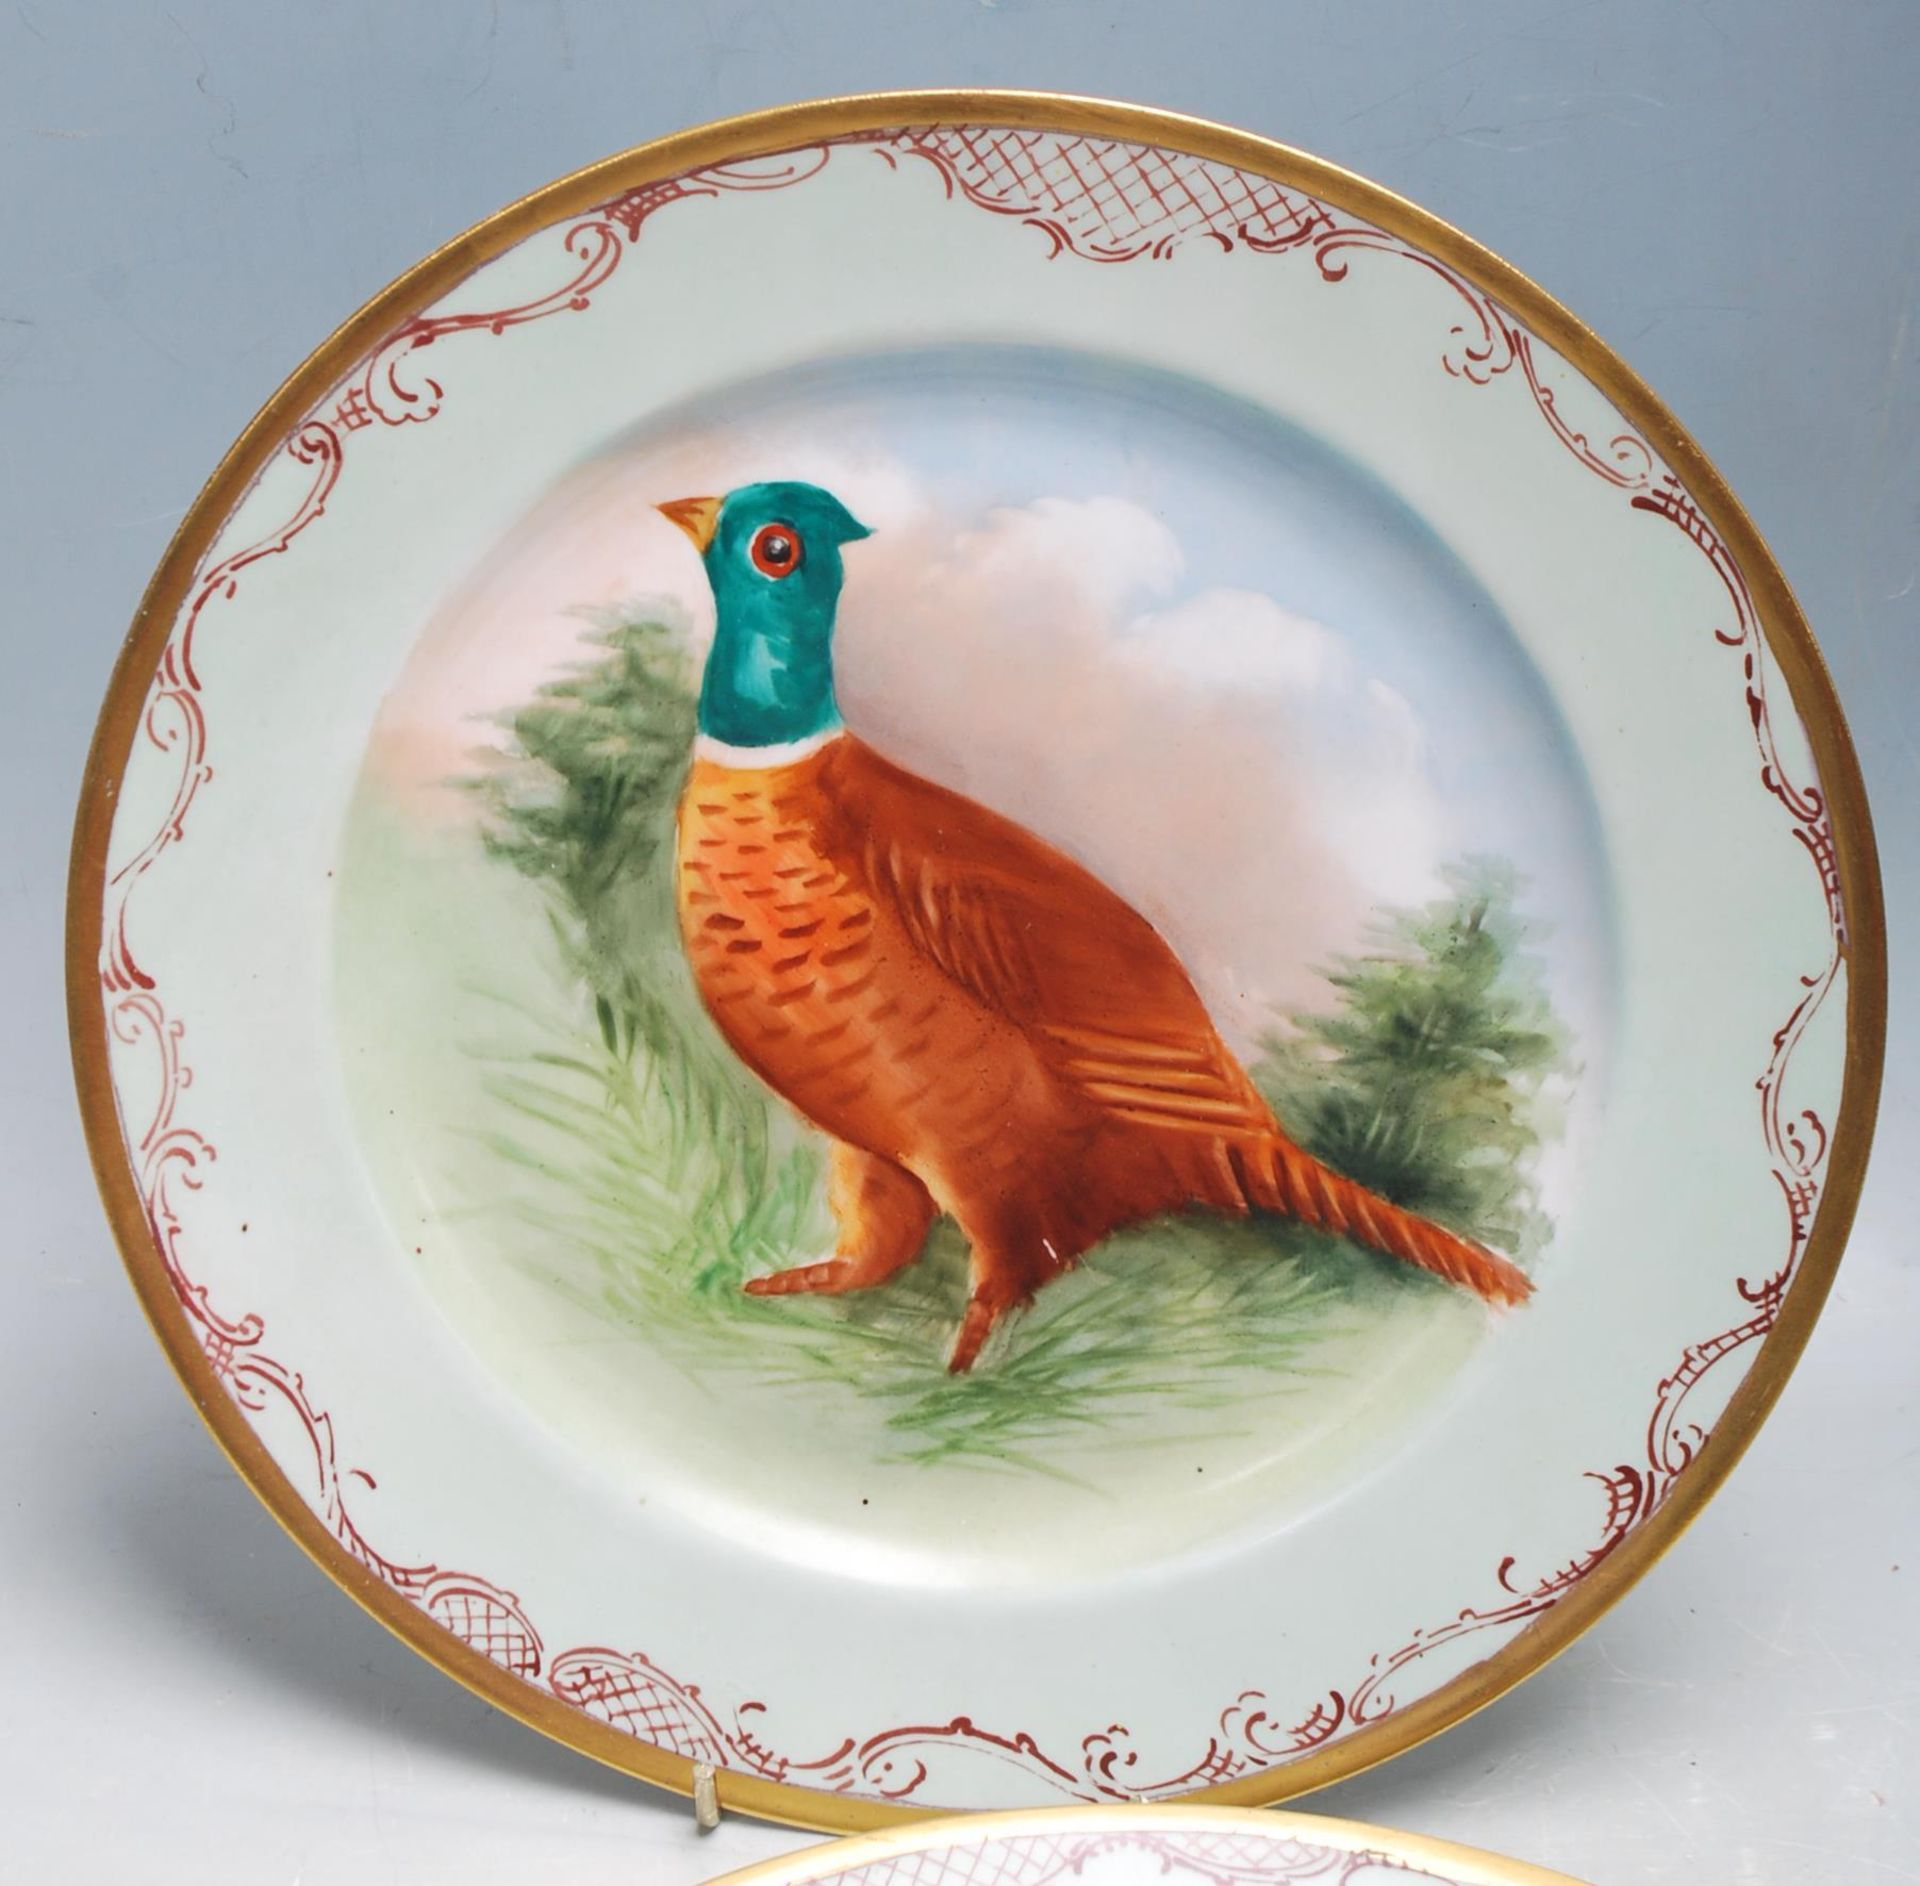 SET 4 JEAN POUYAT LIMOGES GAME BIRD CABINET PLATES - Image 2 of 6